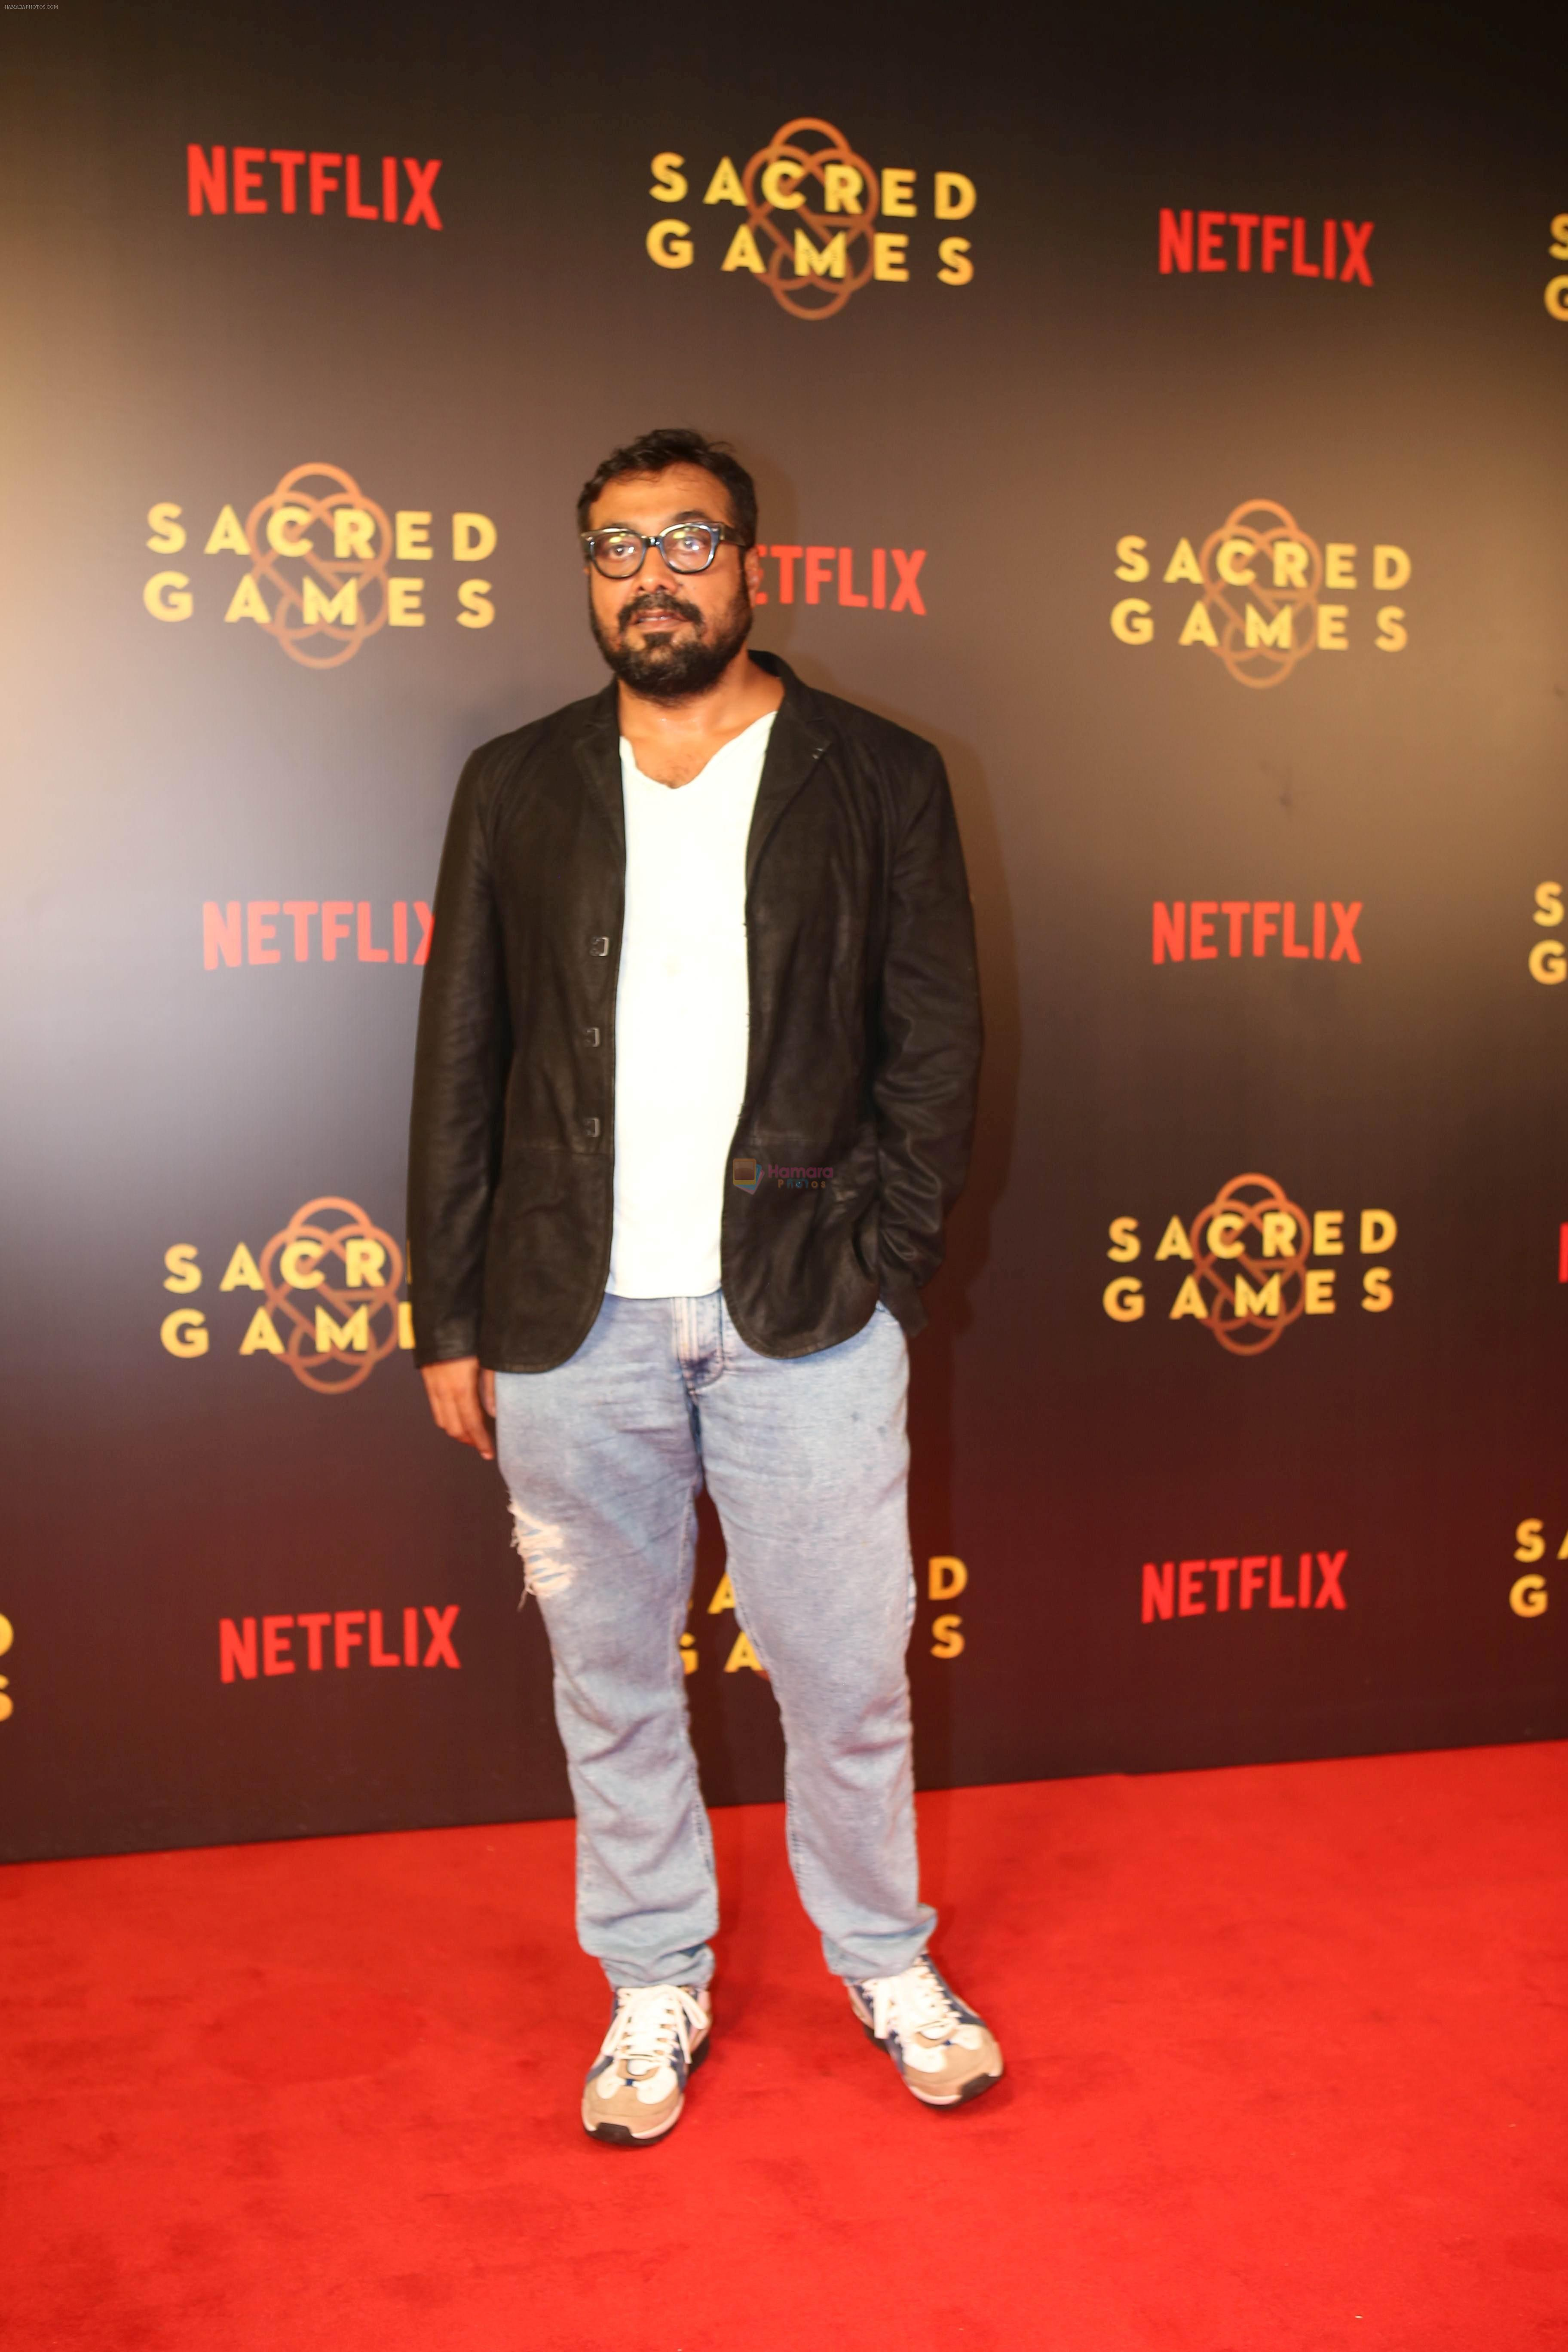 Anurag Kashyap at the Screening of Netflix Sacred Games in pvr icon Andheri on 28th June 2018